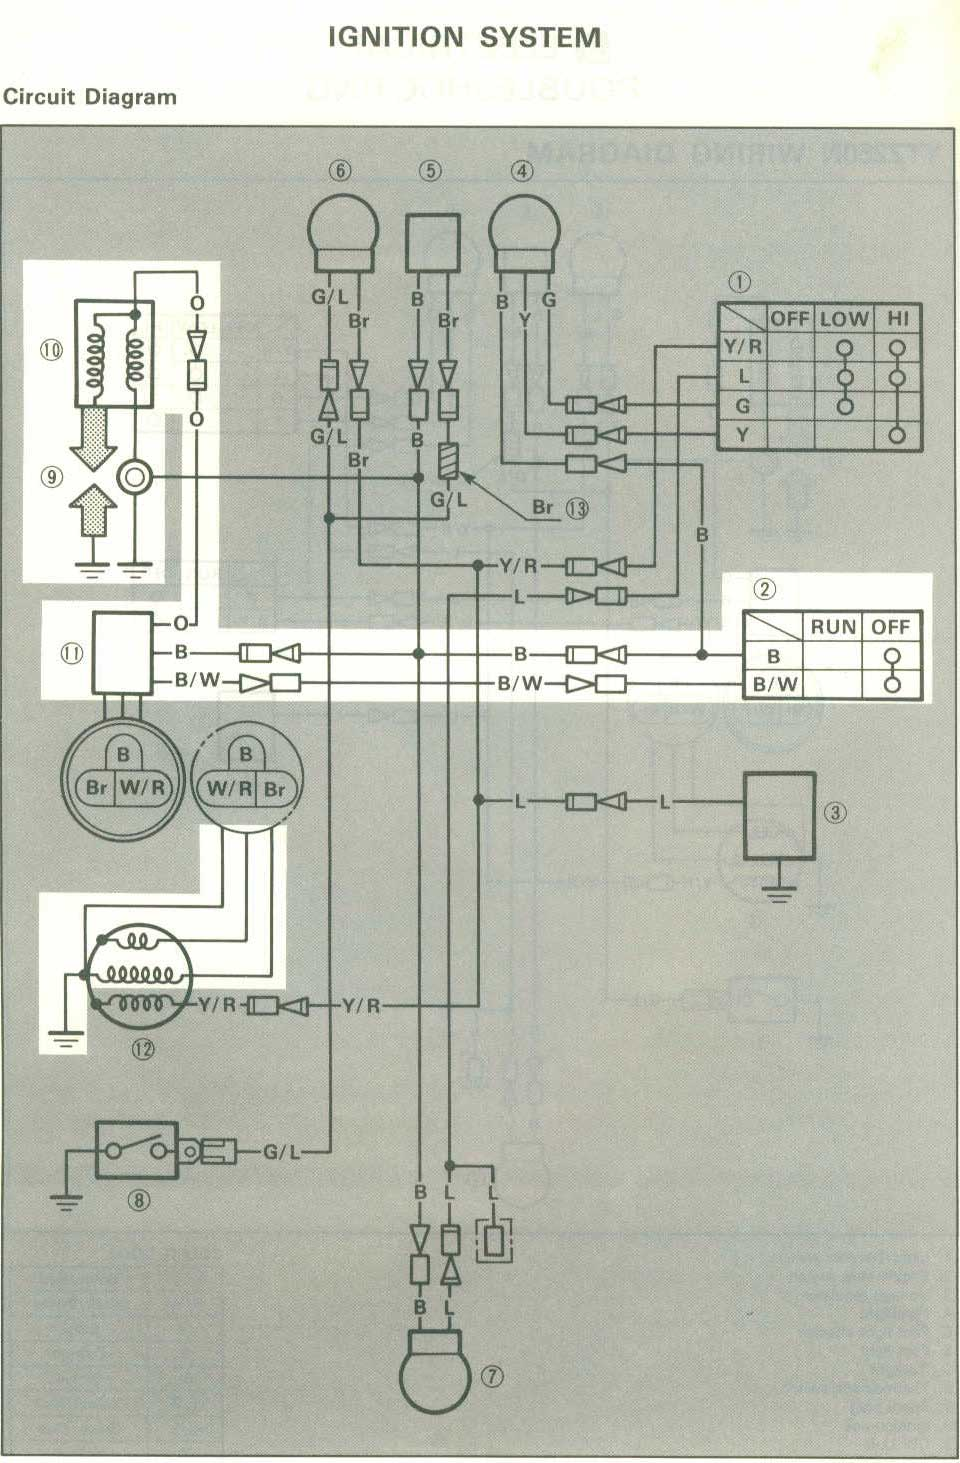 Wire Diagram 1985 Yamaha Virago Another Blog About Wiring 1982 920 Books Of U2022 Rh Mattersoflifecoaching Co